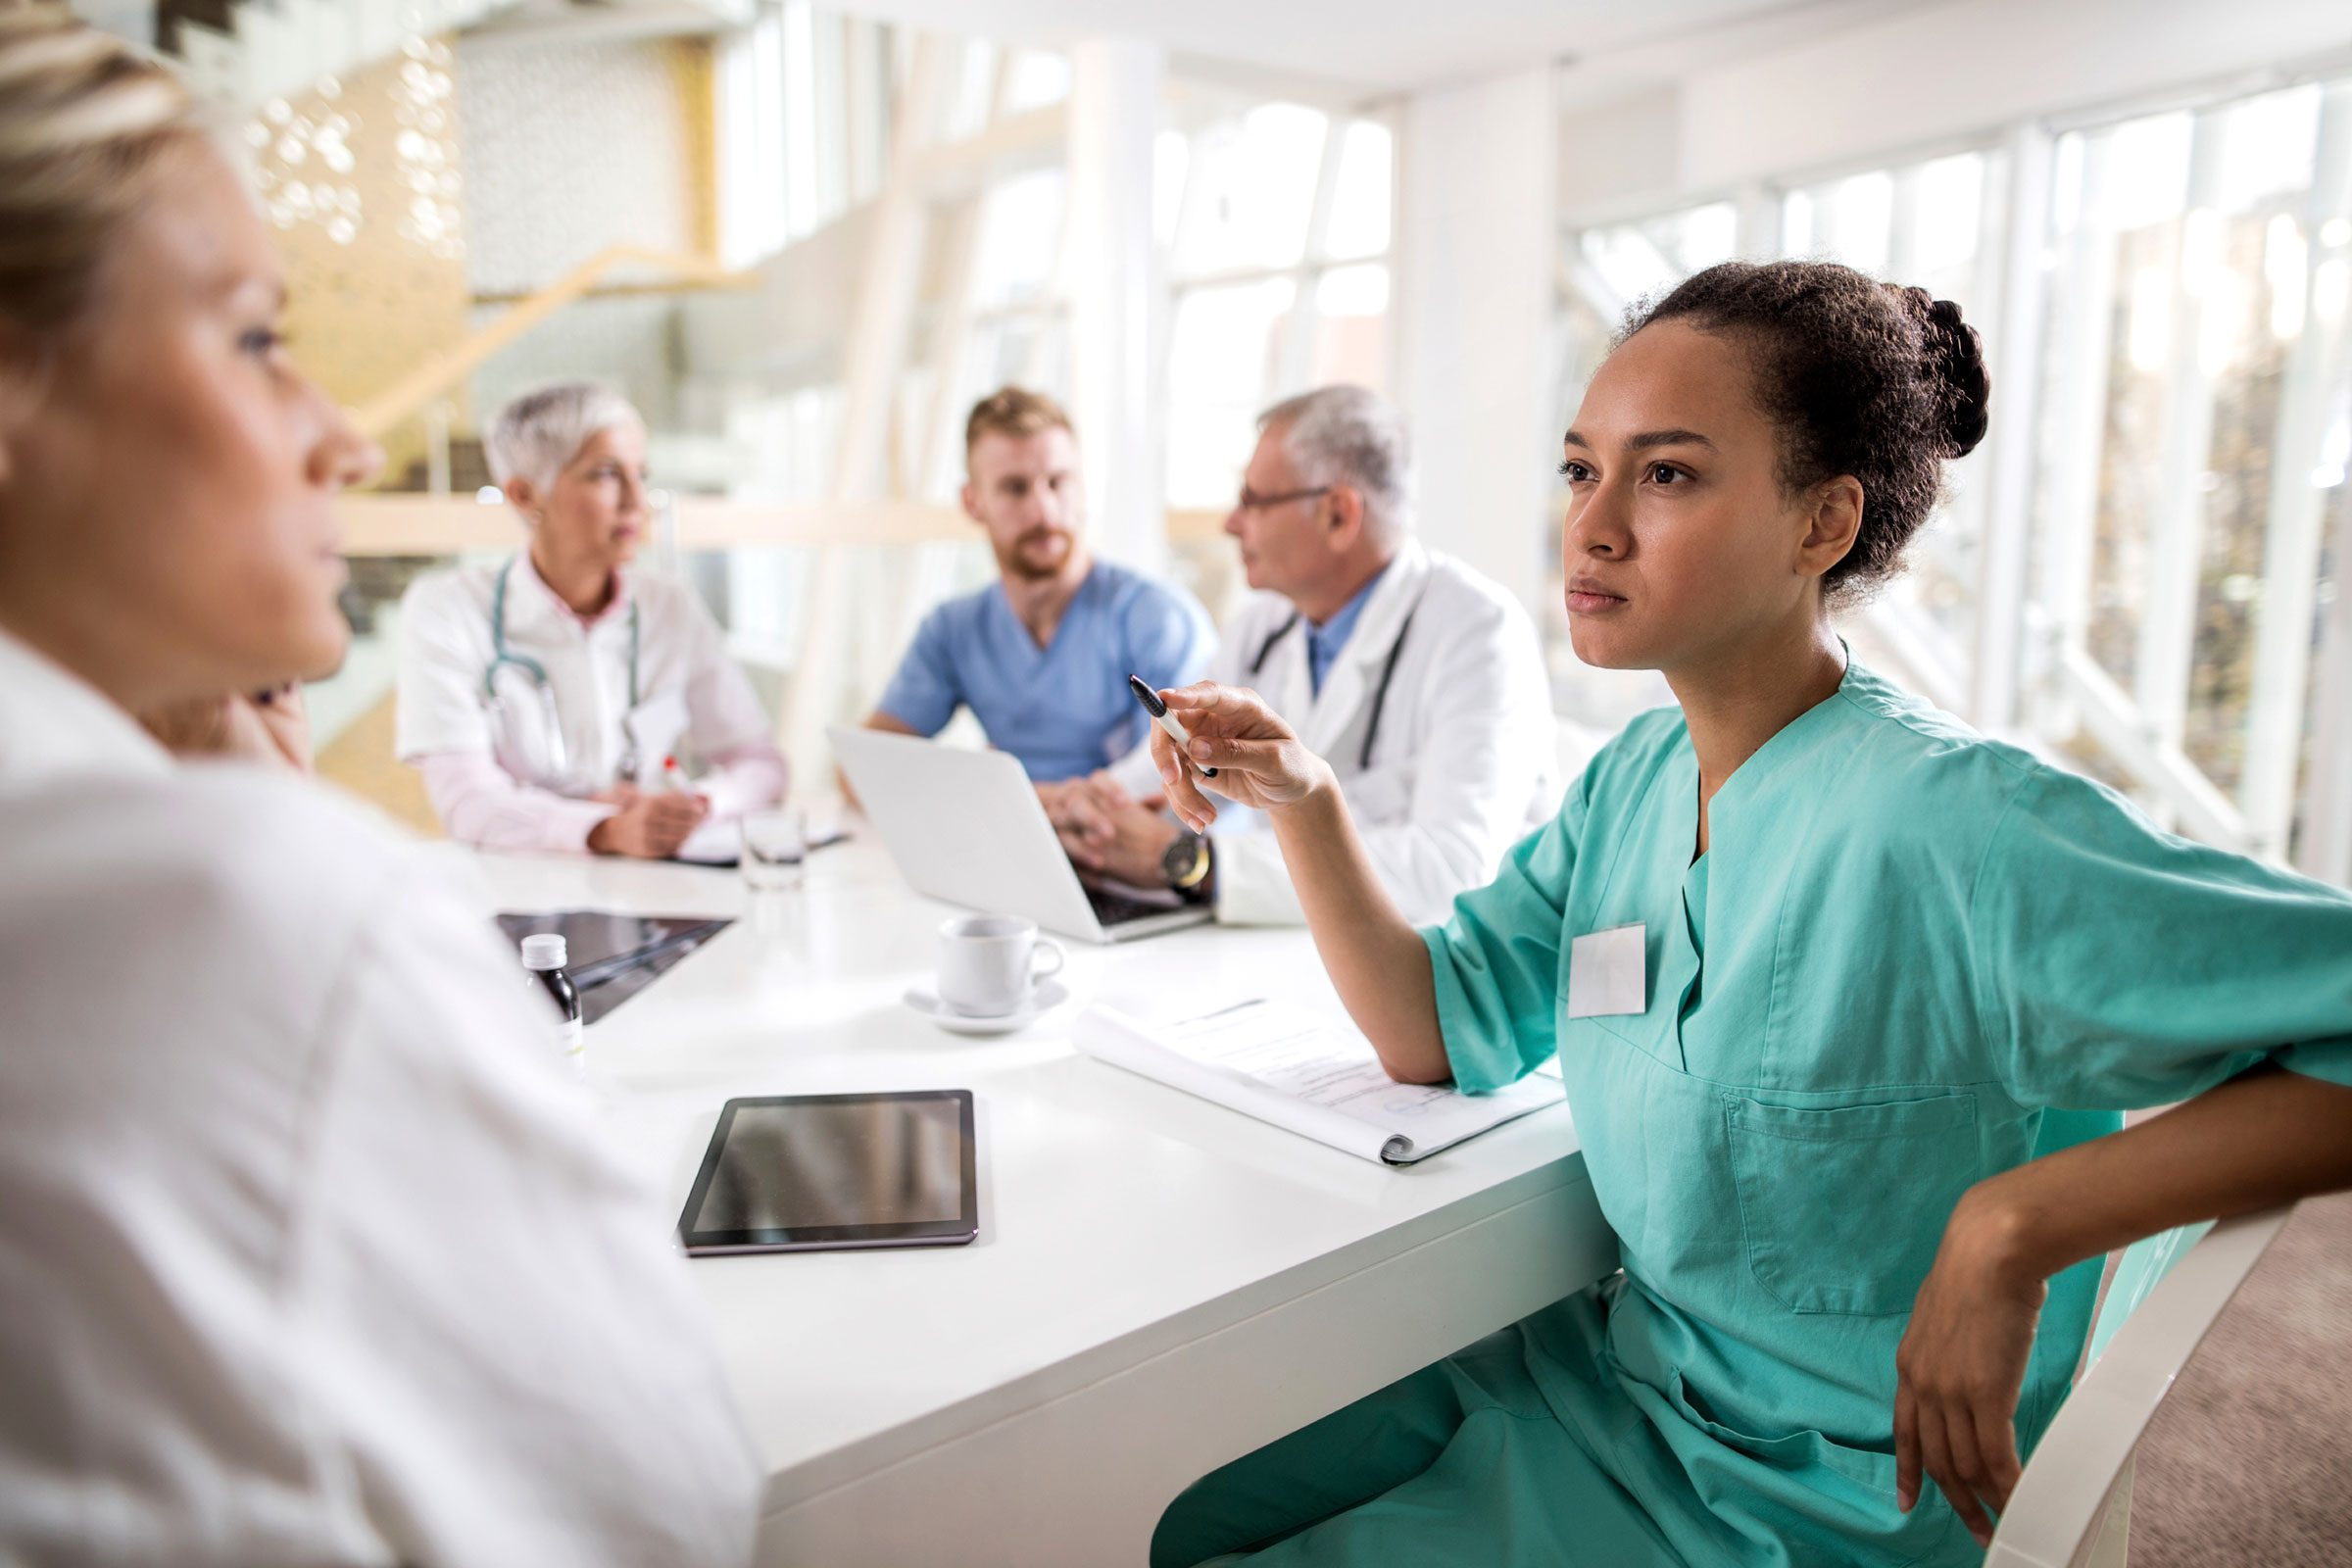 doctors and nurses talking at table